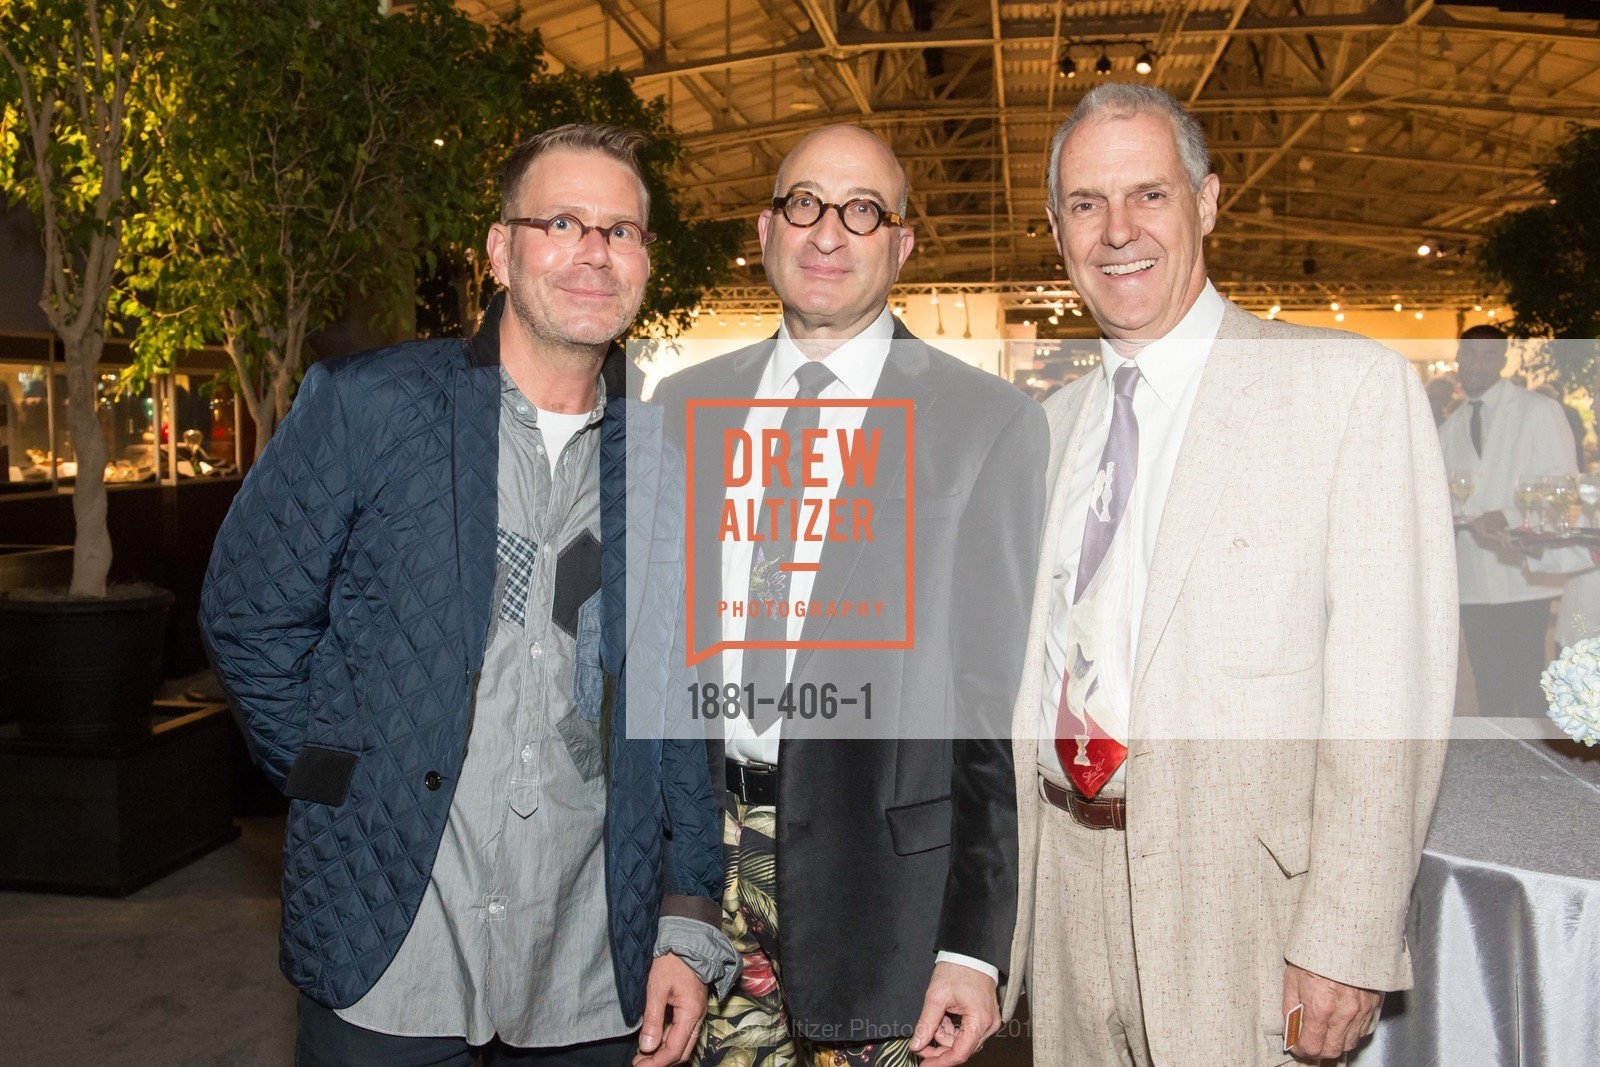 Kevin Grawey, Alan Deal, Jefferson  Mack, The San Francisco Fall Antiques Show, Festival Pavilion, Fort Mason, October 21st, 2015,Drew Altizer, Drew Altizer Photography, full-service agency, private events, San Francisco photographer, photographer california